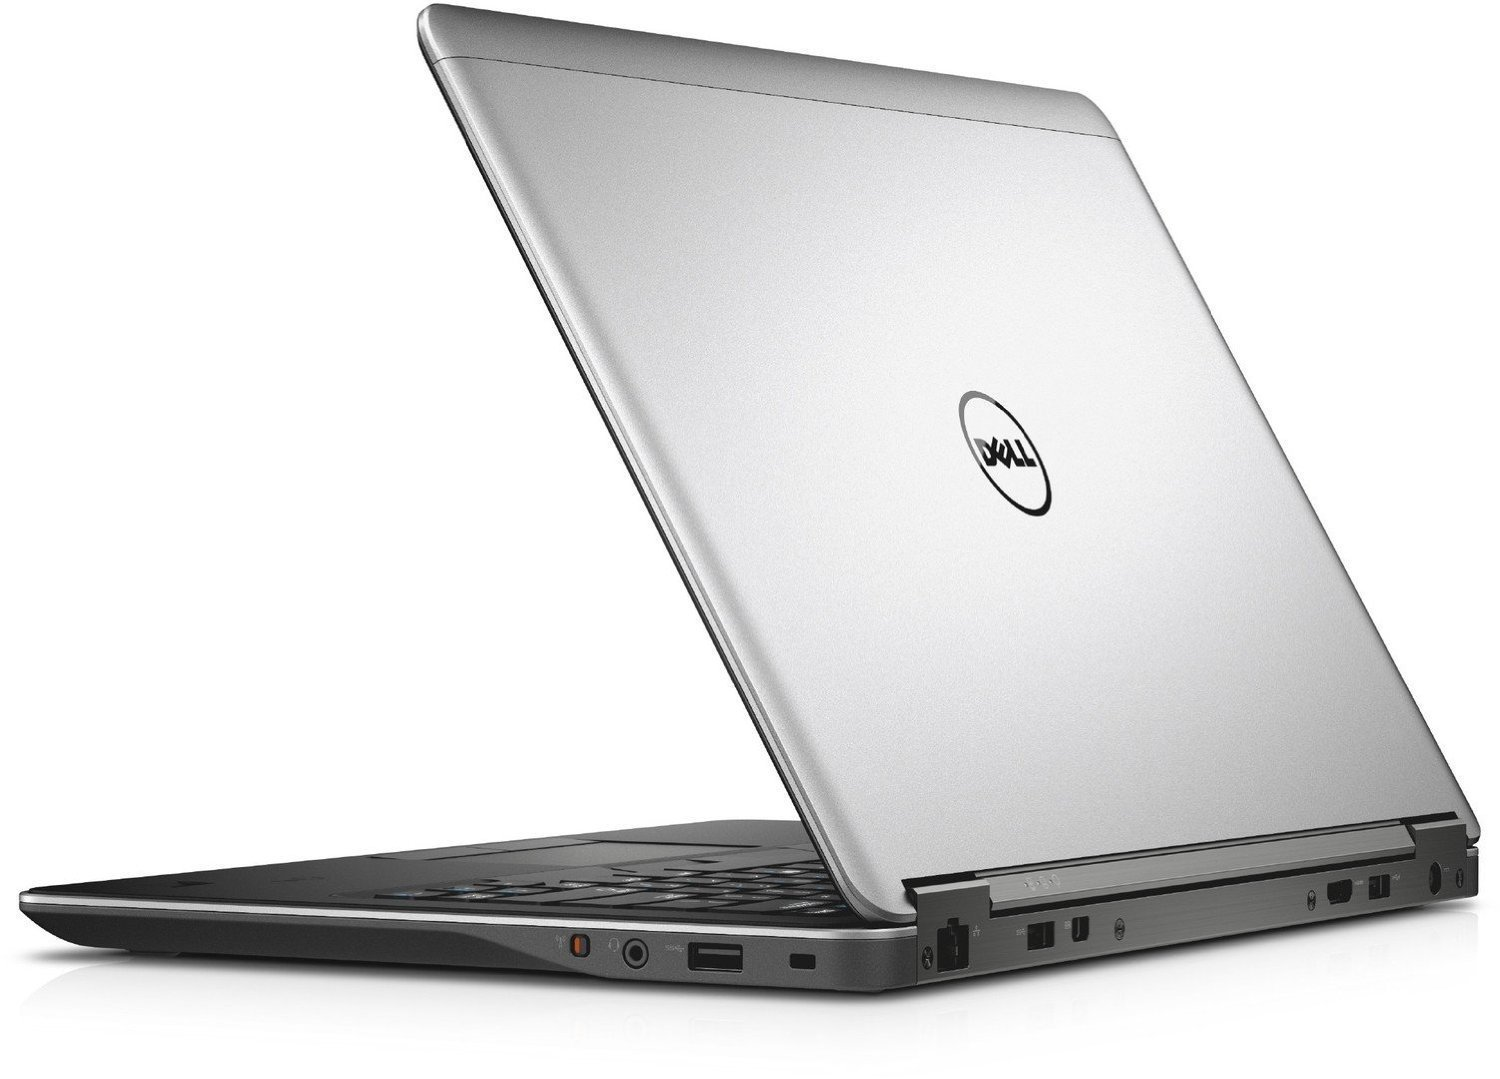 List hàng Laptop cao cấp Macbook-SONY-DELL-HP-ASUS-LENOVO-ACER-SAMSUNG ship từ USA - 14